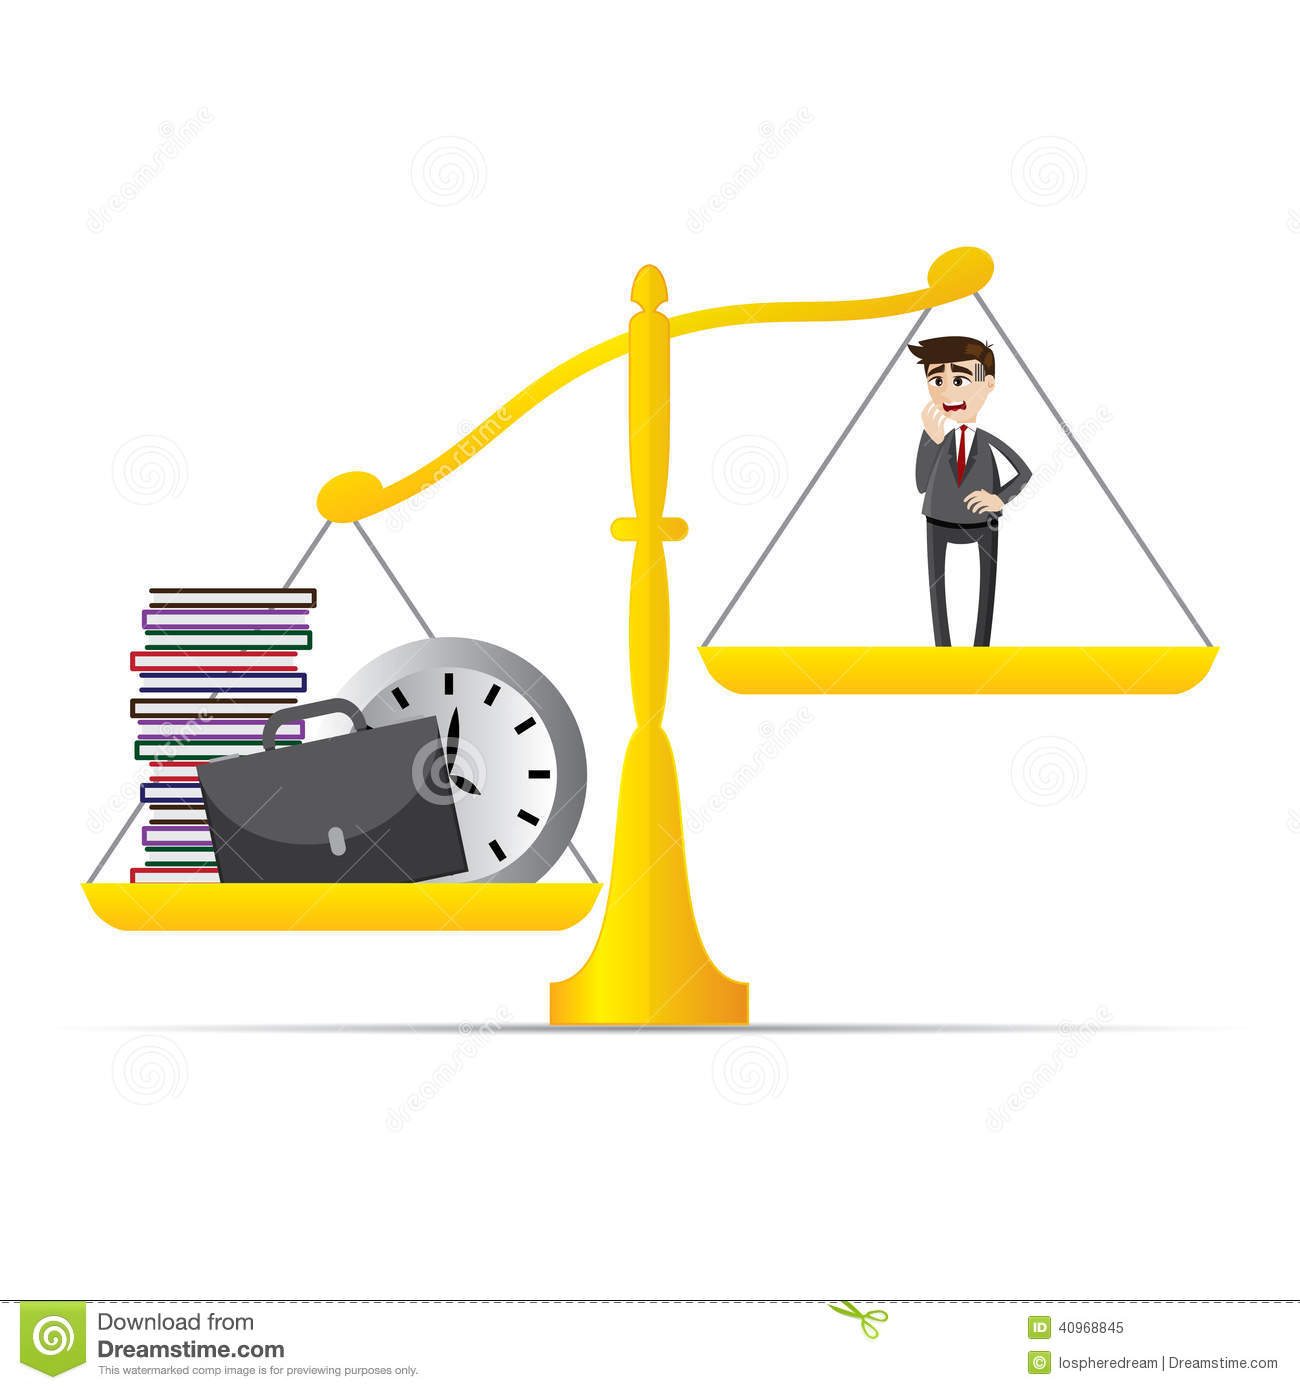 ... businessman and lot of work on balance scale in workload concept